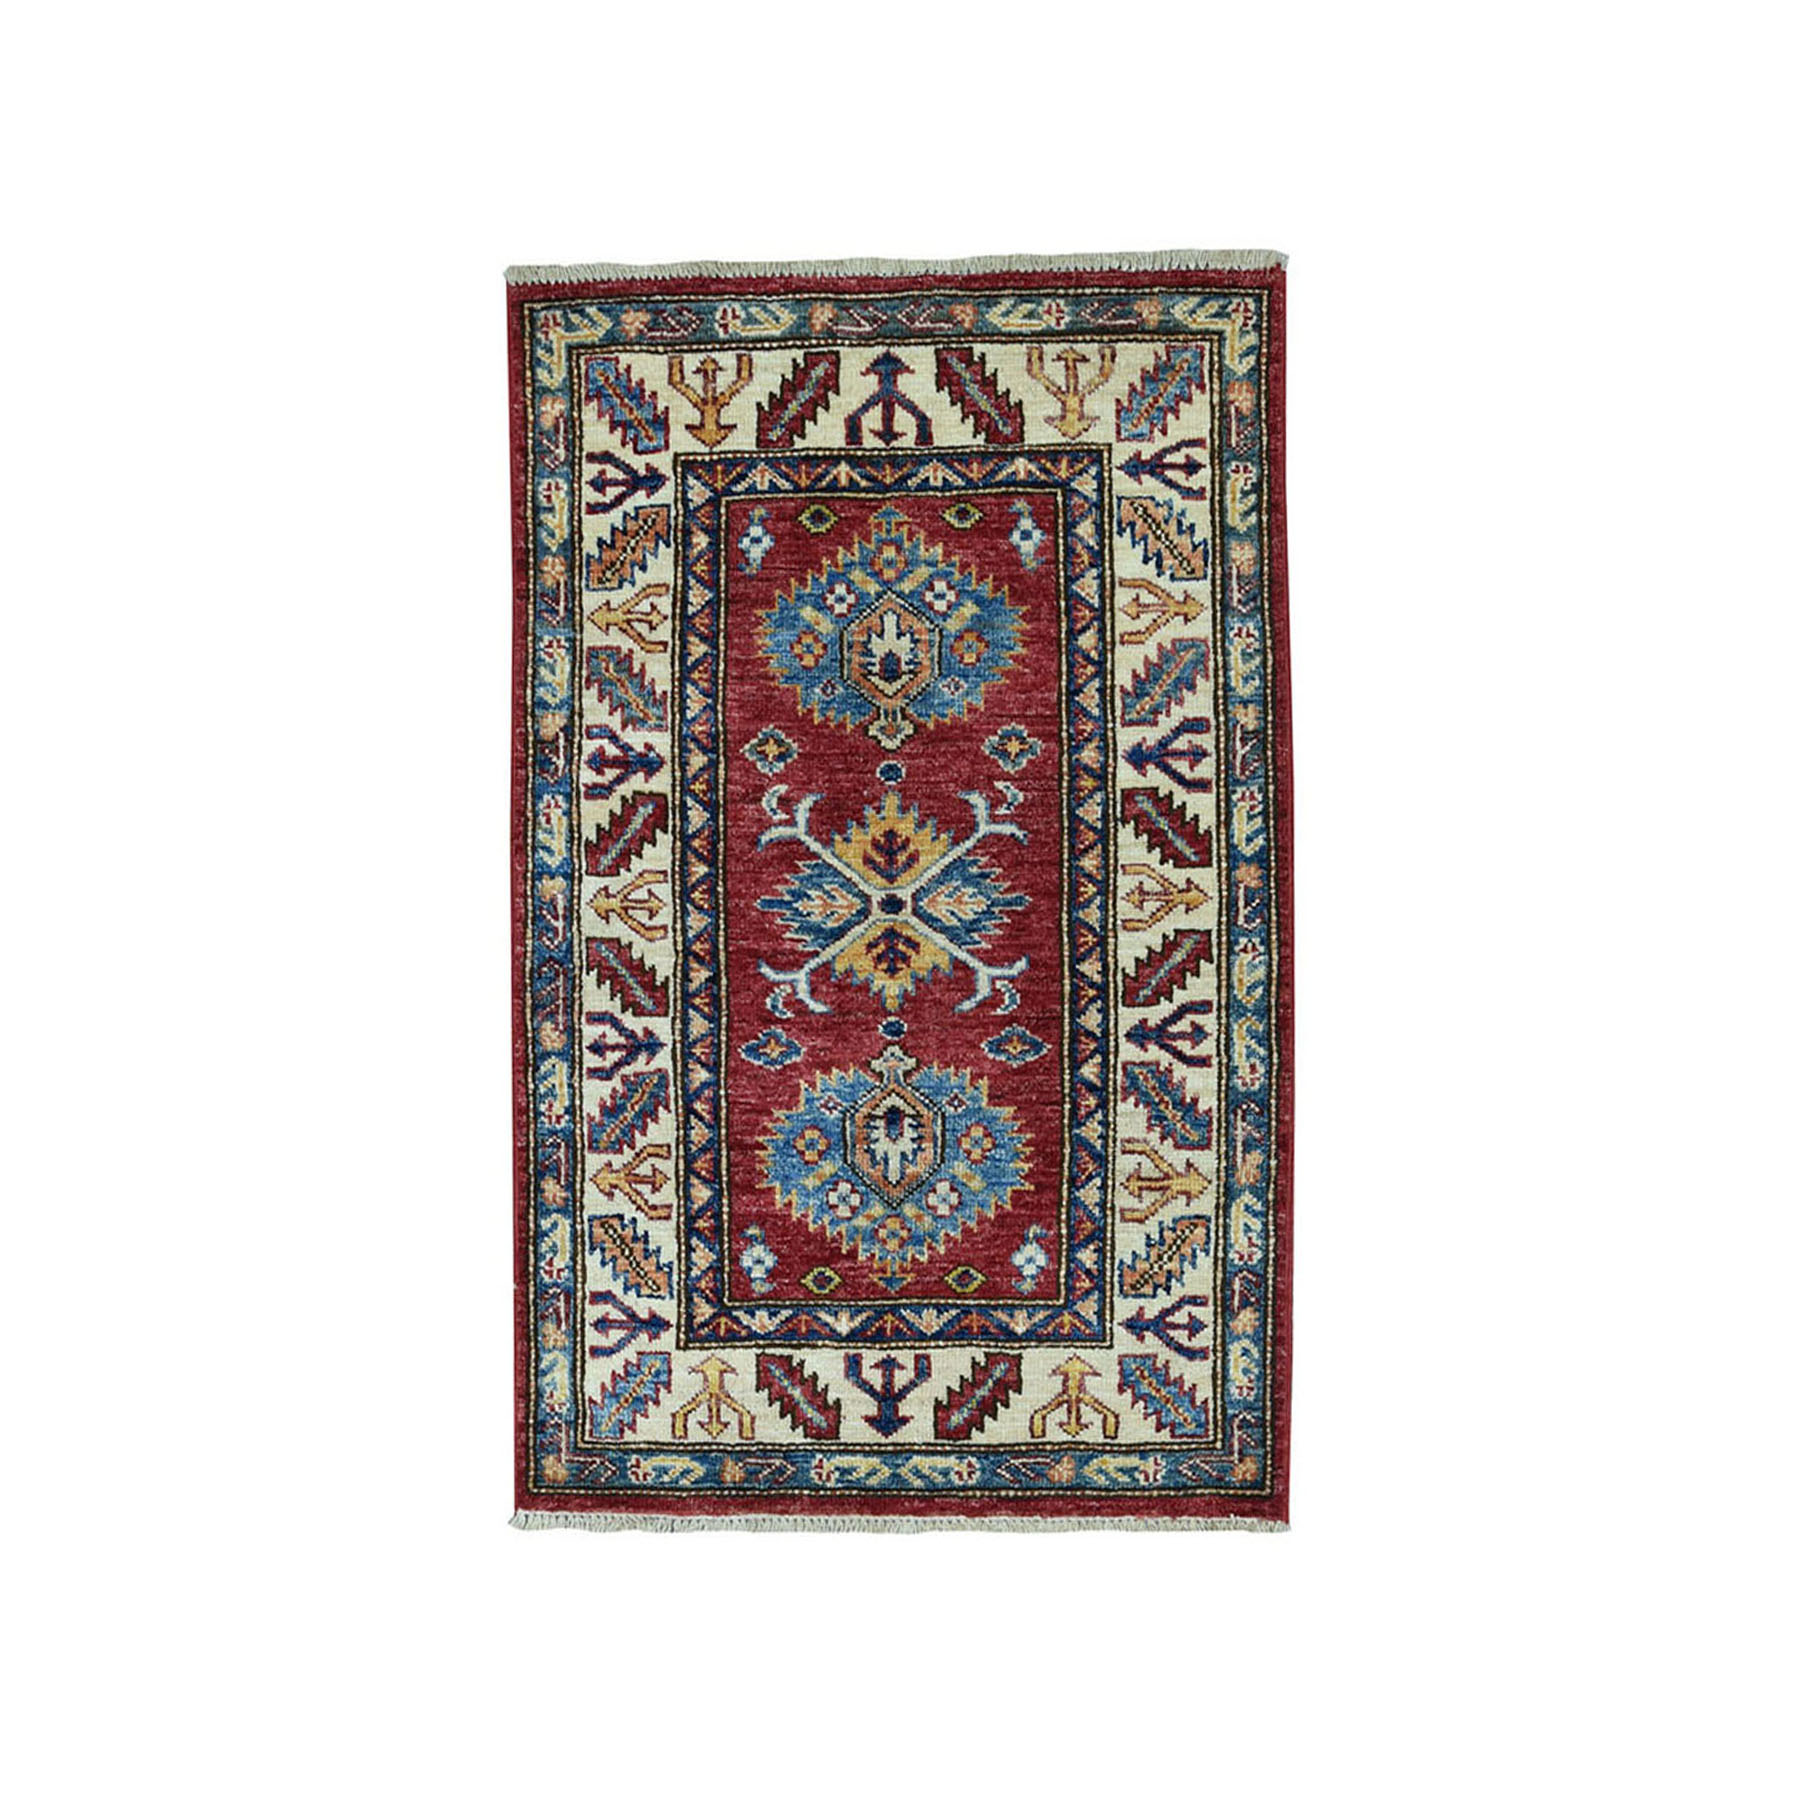 "2'2""X3'2"" Red Super Kazak Pure Wool Geometric Design Hand-Knotted Oriental Rug moae090d"